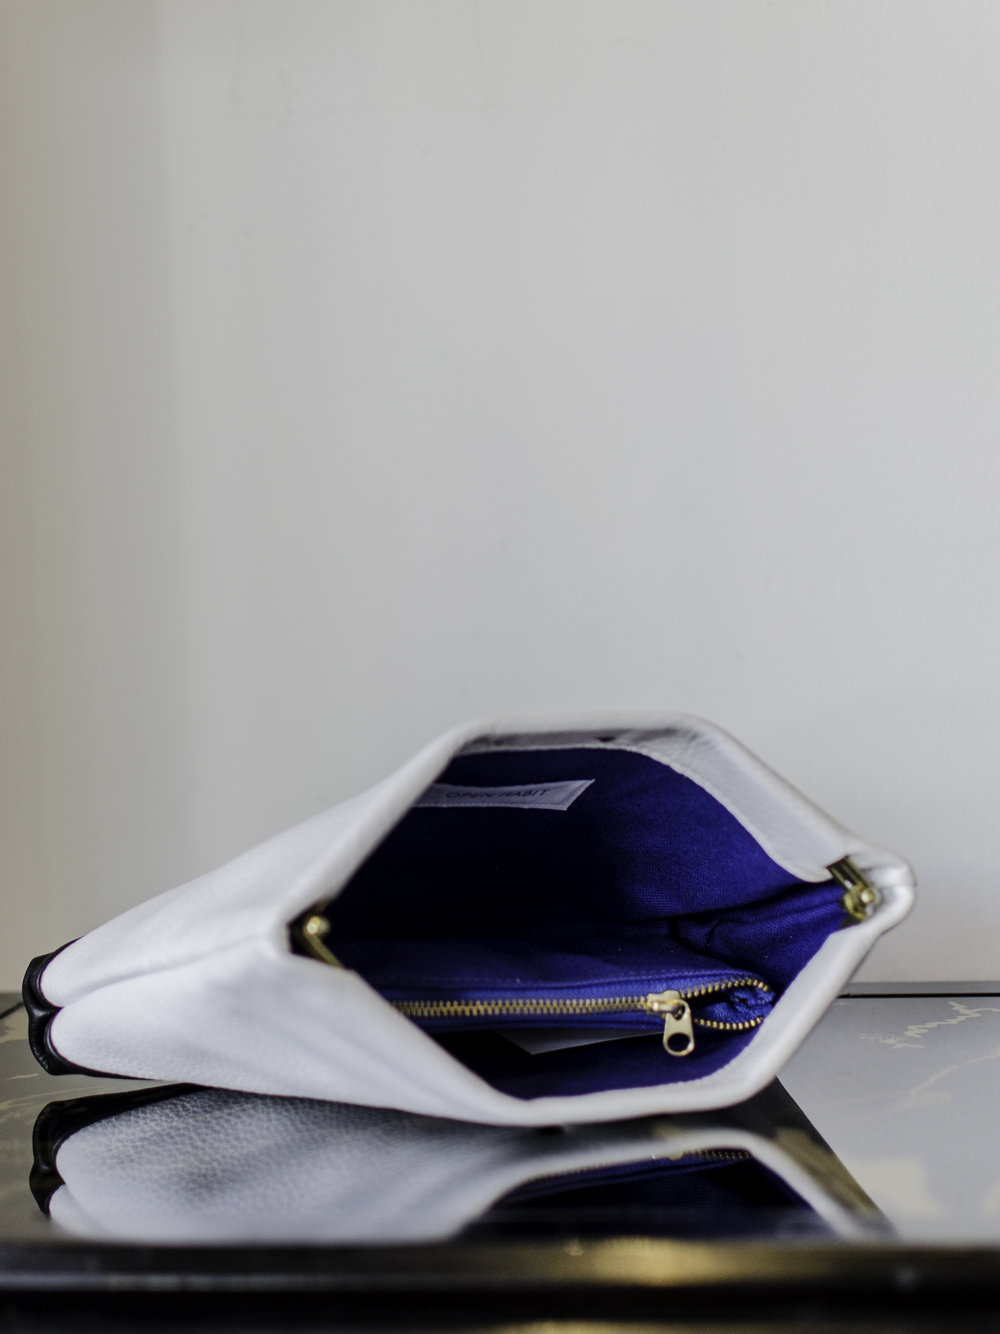 Open Habit Blackand White Clutch - This clutch is all business until you pop it open and discover the electrifying blue inside! It would fit my sister so well, since she's sooo professional now but we all know she's a party waiting to explode!